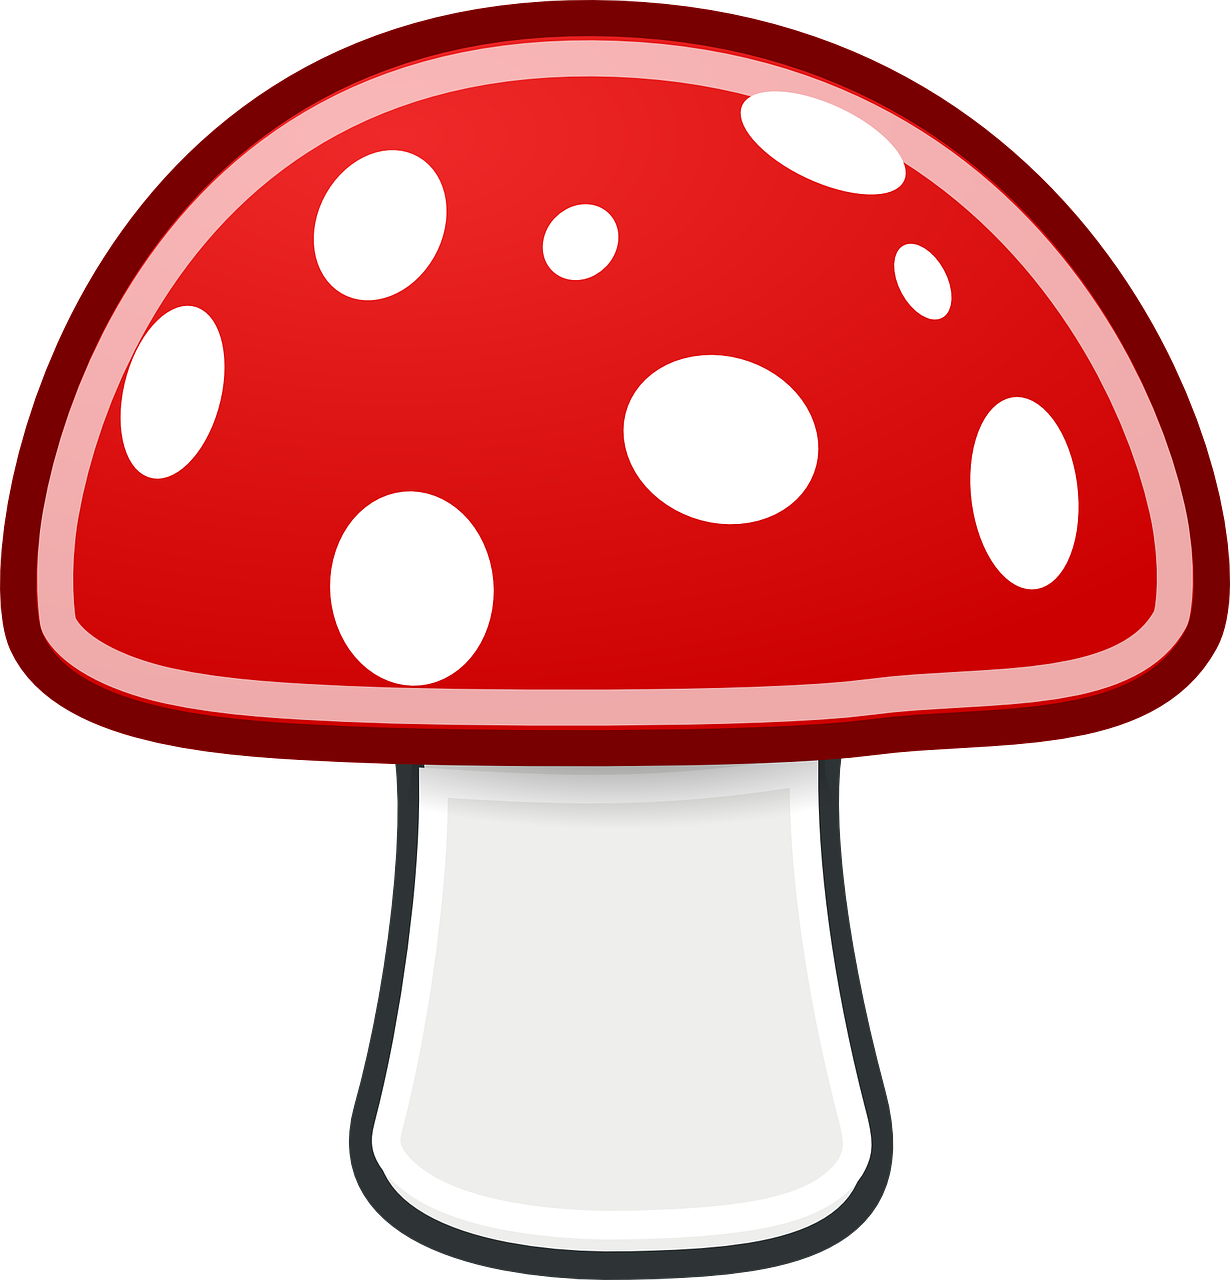 mushroom,red,white,spots,fungus,free vector graphics,free pictures, free photos, free images, royalty free, free illustrations, public domain